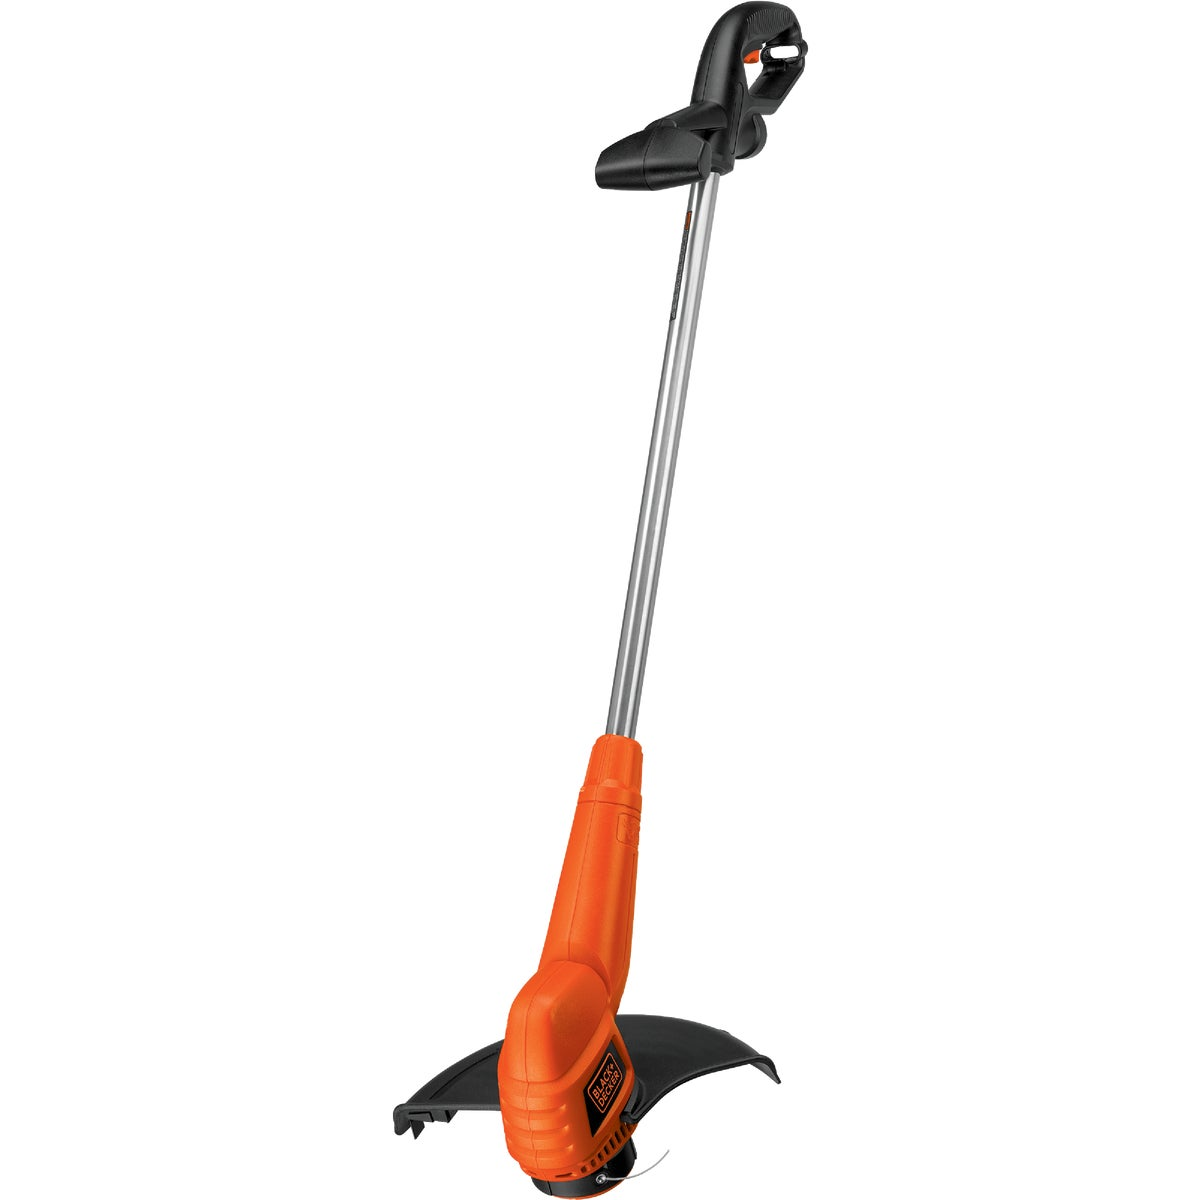 "13"" STRING TRIMMER - ST7700 by Black & Decker"